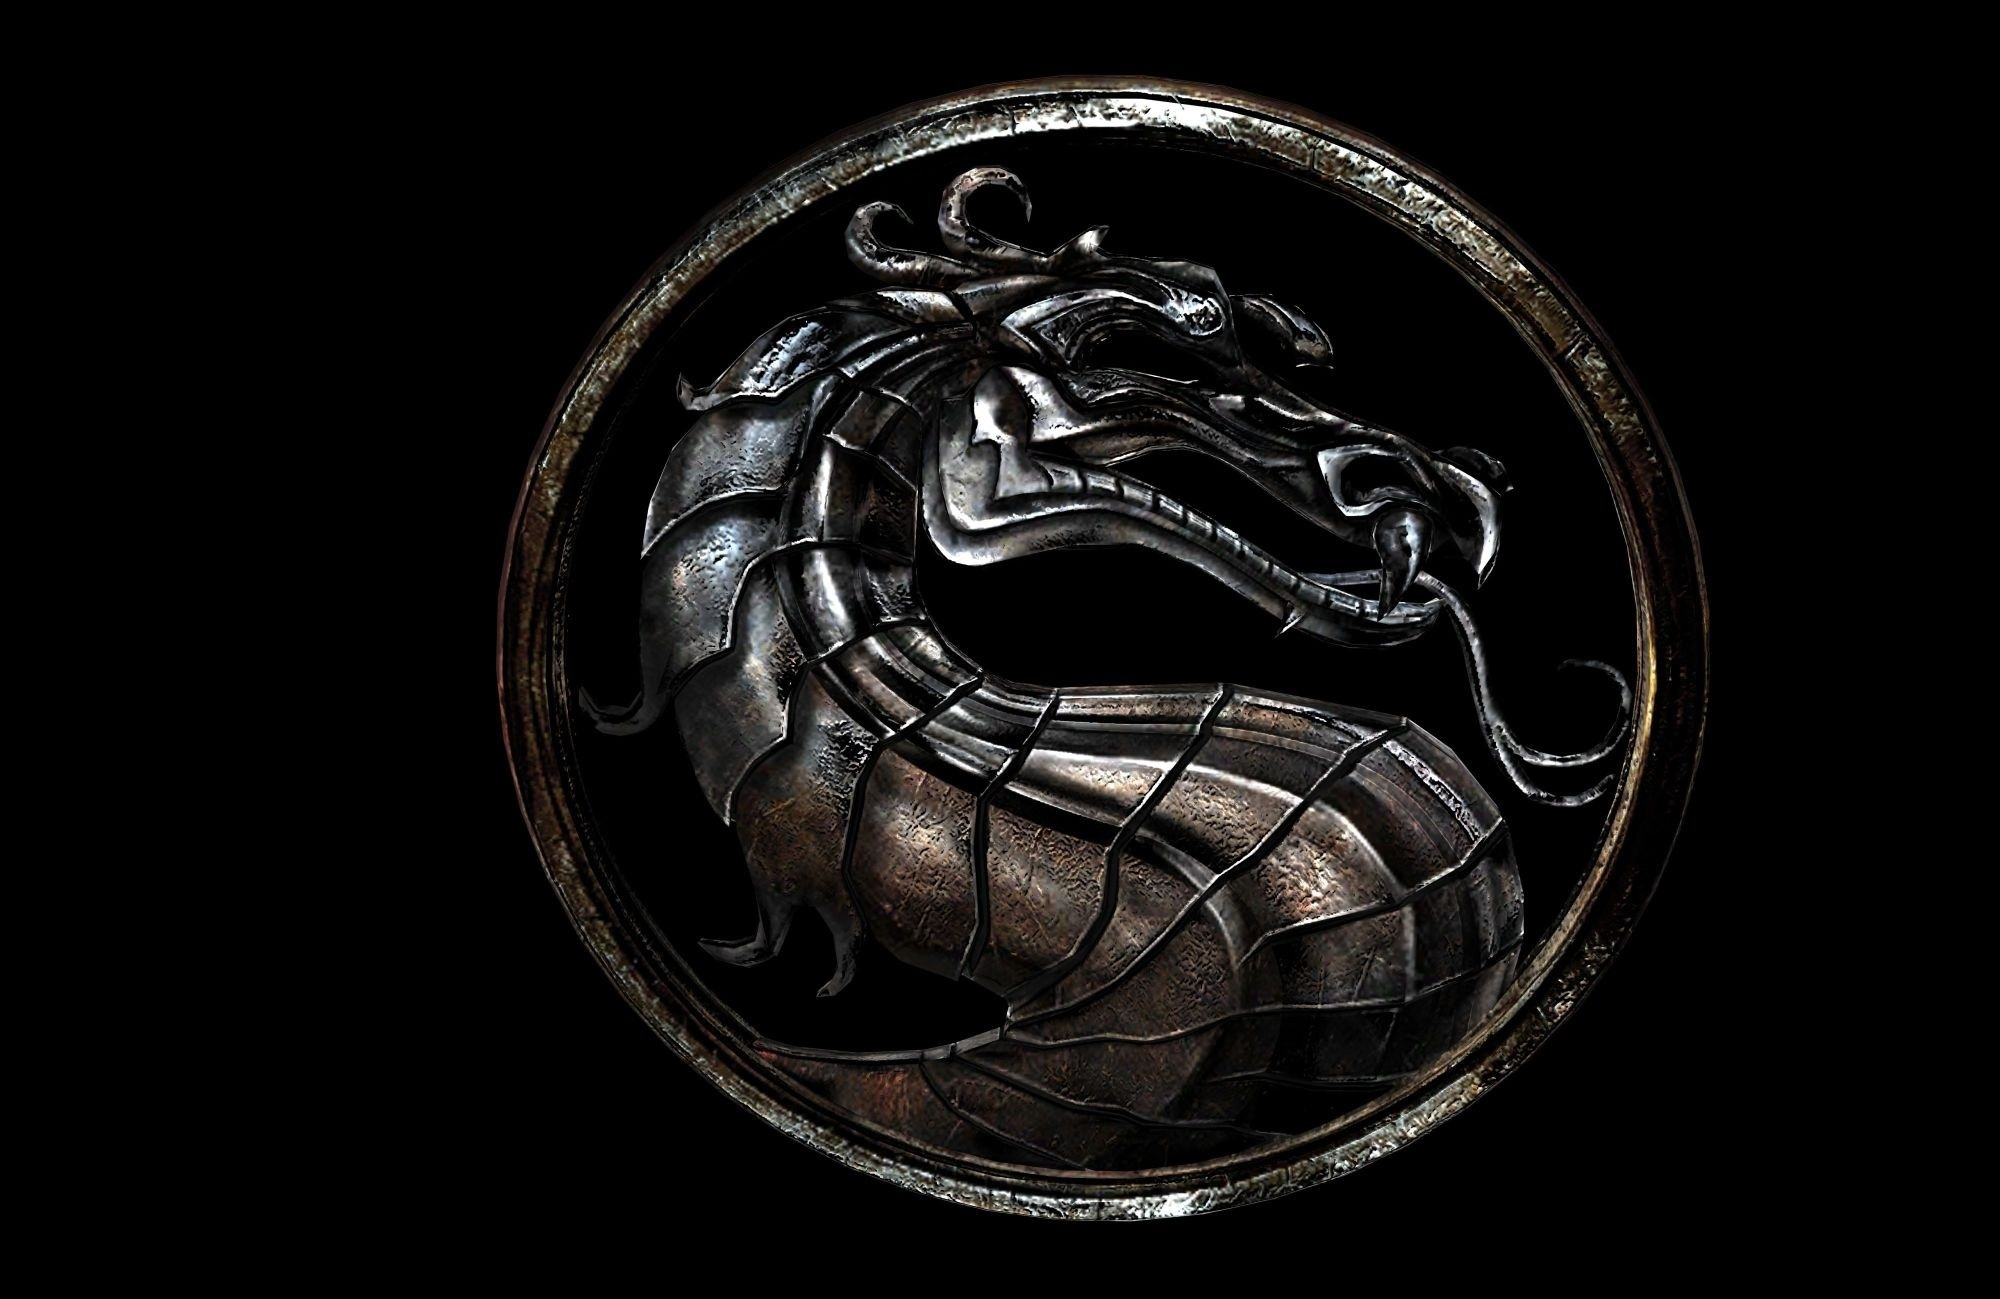 Mortal Kombat wallpaper Dragon from steel